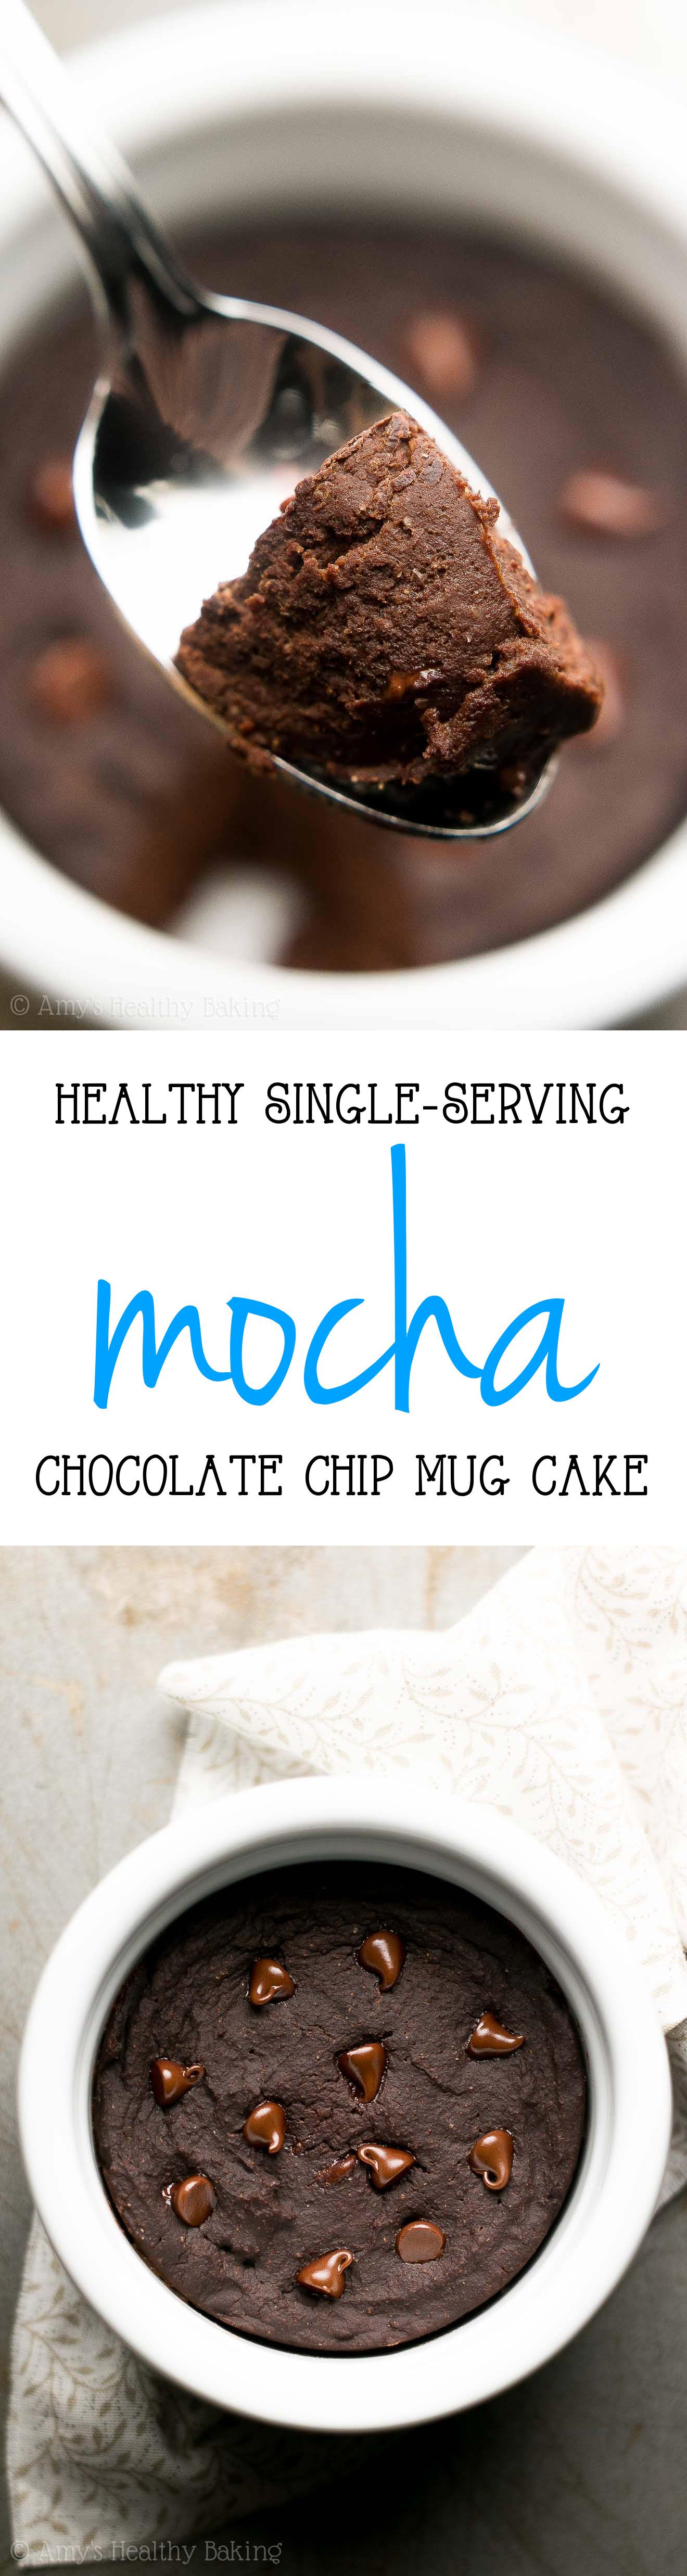 Healthy Single-Serving Mocha Chocolate Chip Mug Cake | Amy ...